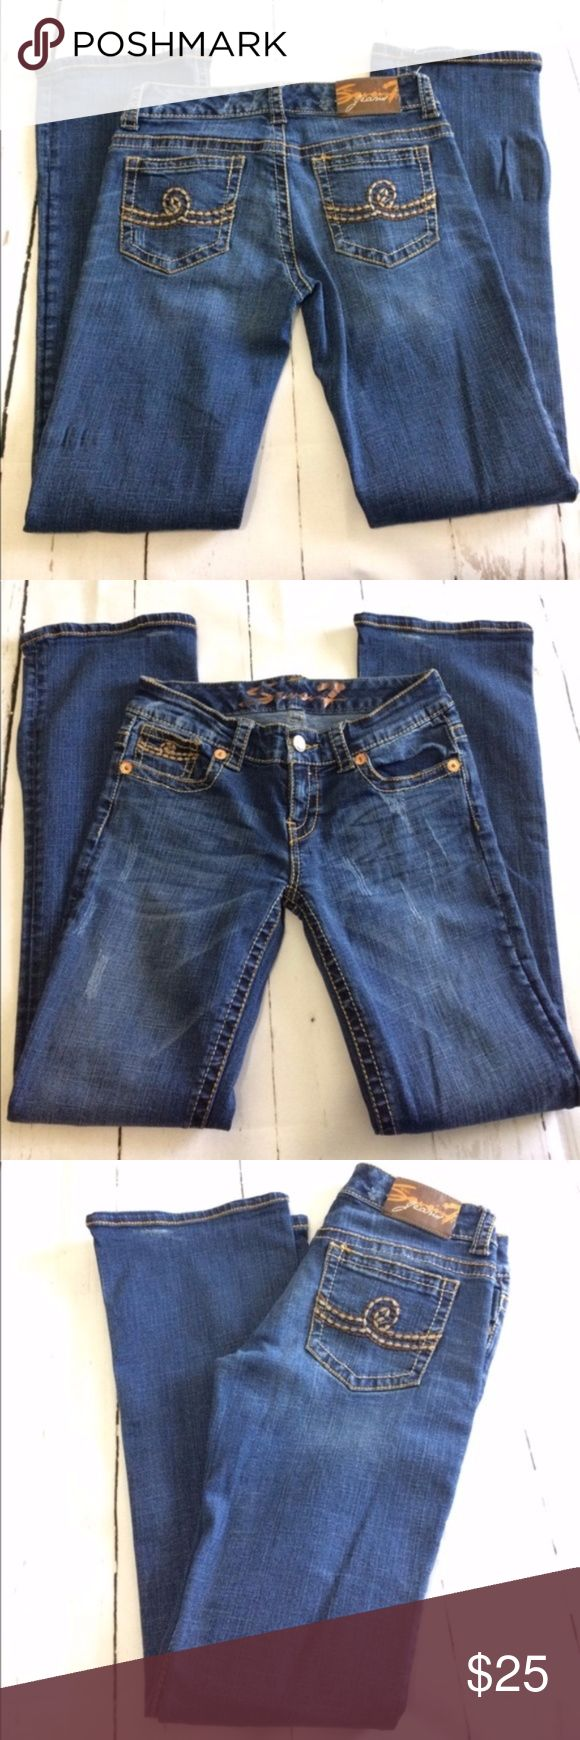 Seven7 Distressed Women's Jeans Brand: Seven7  Description: Manufactures distressed. Bootcut  Three front pockets. Two back pockets. Gently worn.  Rise: 8 inches  Inseam: 31 inches  Size: 28 Seven7 Jeans Boot Cut